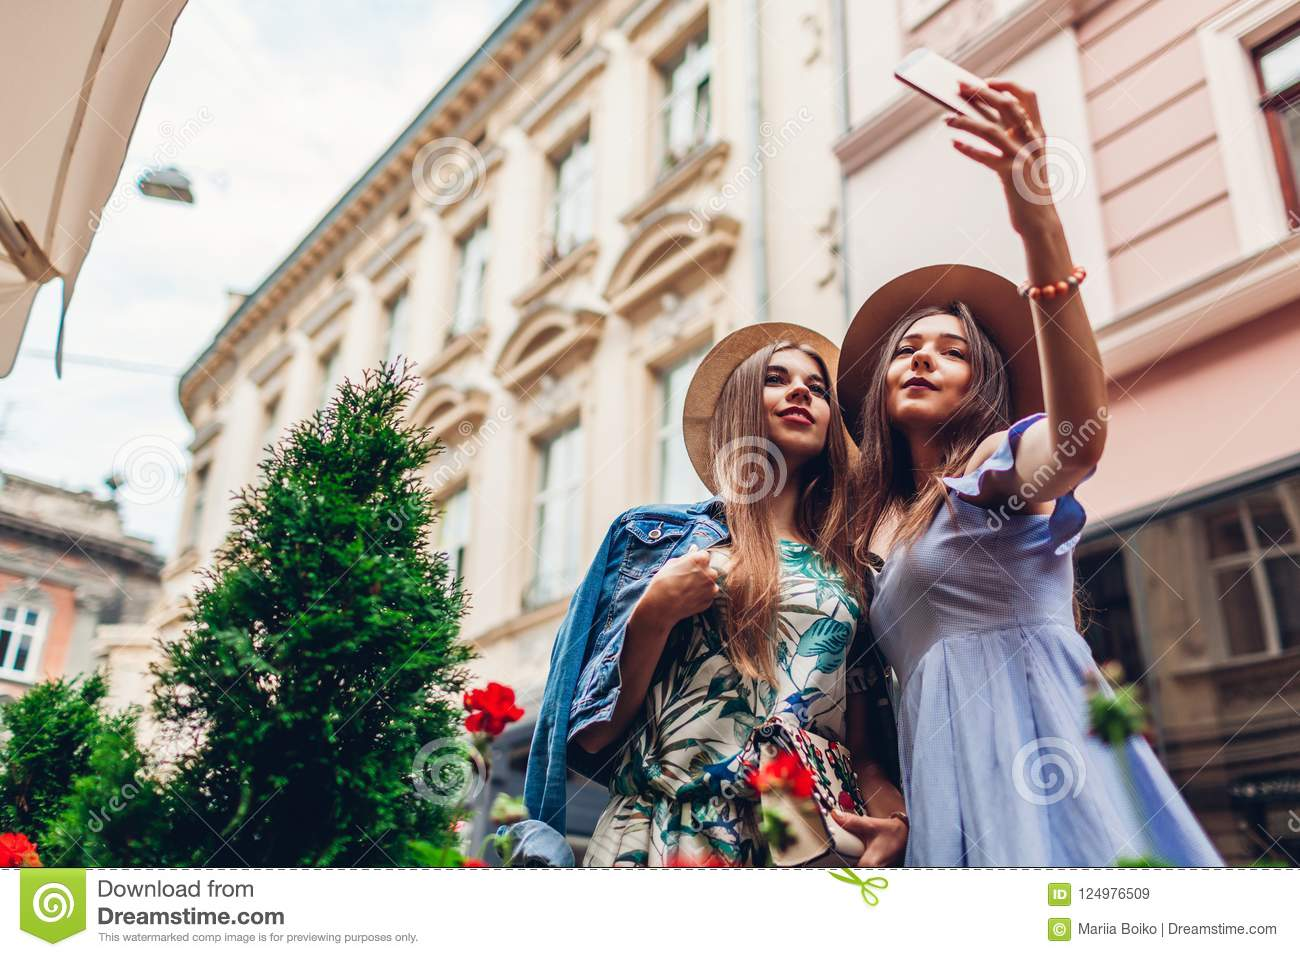 Download Outdoor Portrait Of Two Young Beautiful Women Taking Selfie Using Phone Girls Having Fun